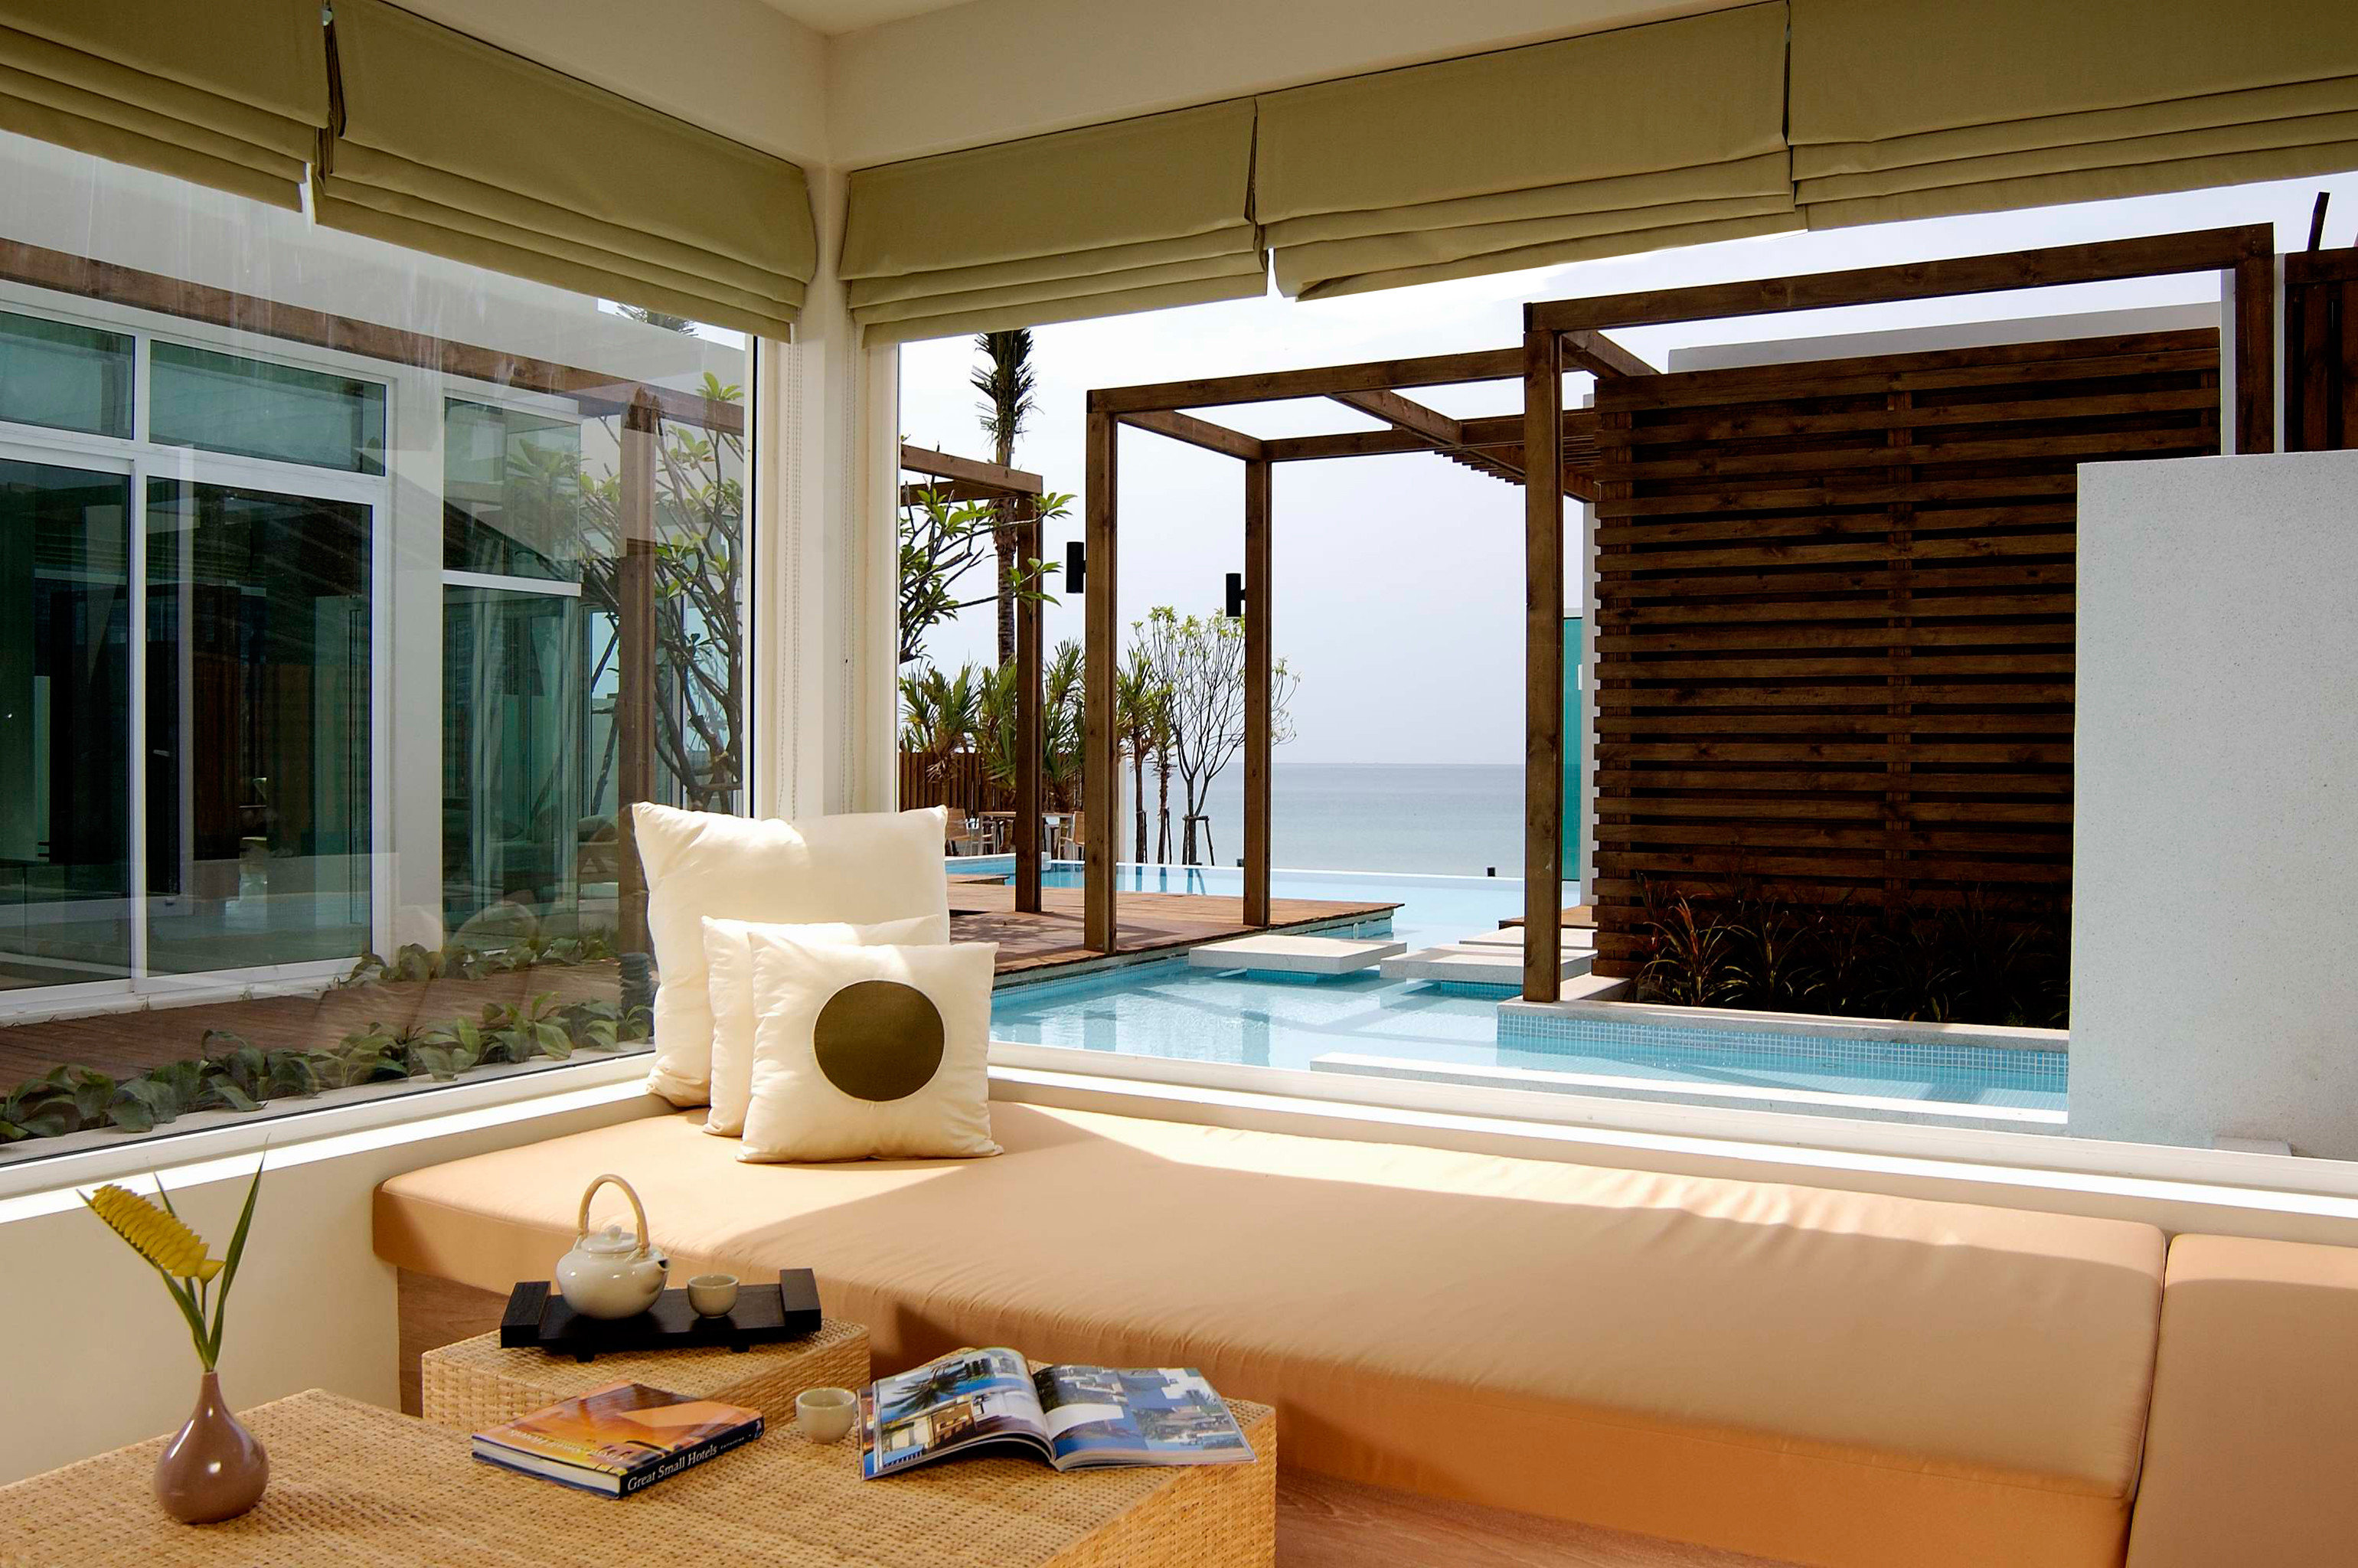 Hip Lounge Luxury Modern Pool property living room building home house condominium Fireplace cottage Villa Suite stone